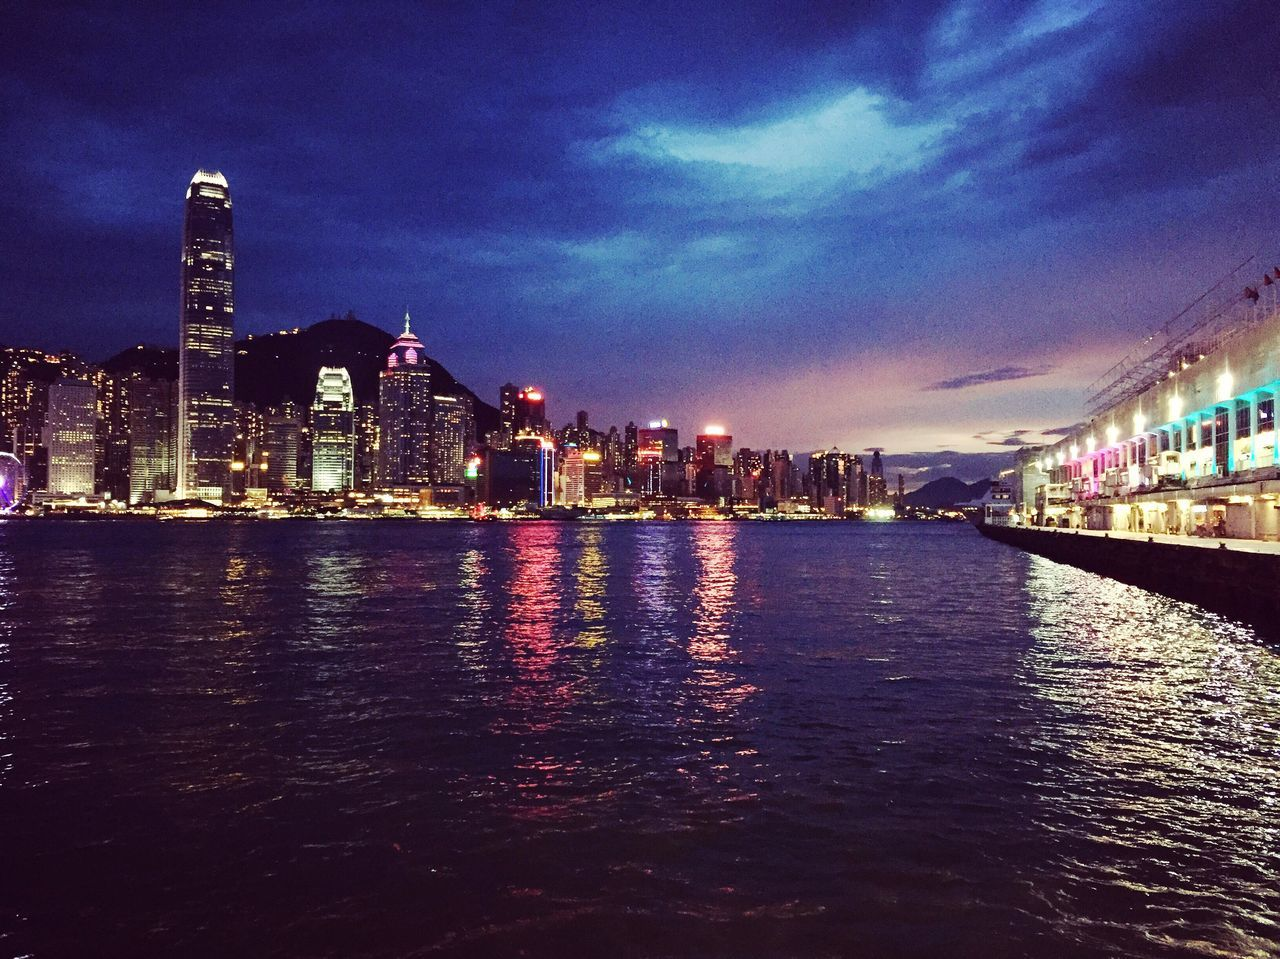 architecture, illuminated, building exterior, built structure, city, night, skyscraper, cityscape, sky, waterfront, modern, city life, water, travel destinations, urban skyline, river, cloud - sky, no people, outdoors